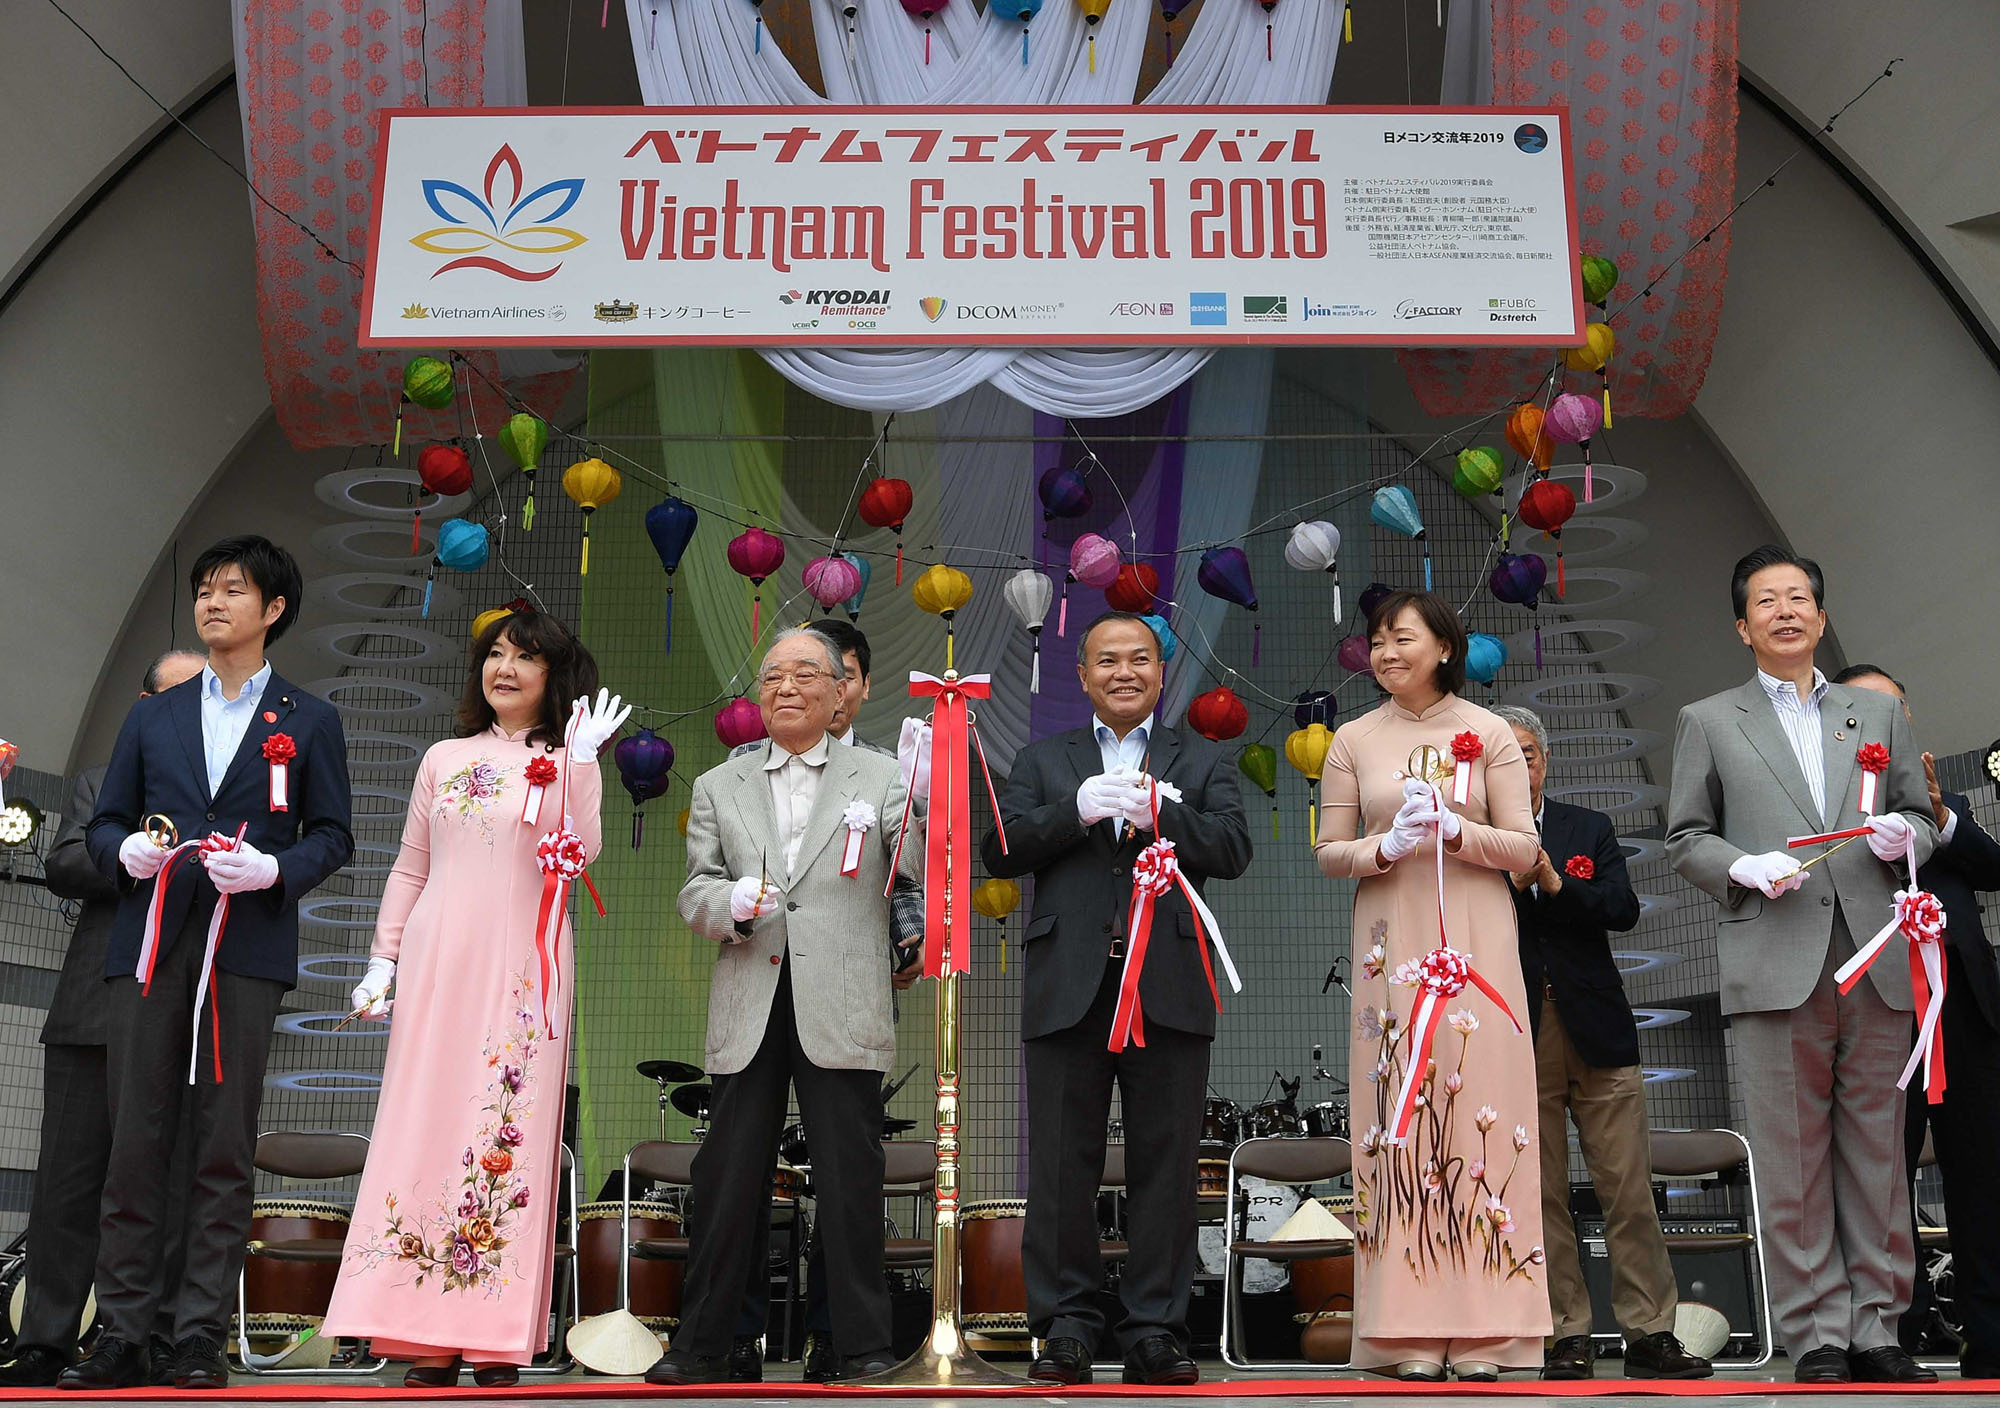 The two co-chairmen on the Vietnam Festival 2019 executive committee, Vietnamese Ambassador Vu Hong Nam (third from right) and Former State Minister and founder of Vietnam Festival Iwao Matsuda (third from left), pose with (from left) Parliamentary Vice-Minister for Foreign Affairs Norikazu Suzuki; Satsuki Katayama, minister for regional revitalization and women's empowerment; Prime Minister Shinzo Abe's wife, Akie; and Komeito leader Natsuo Yamaguchi during the ribbon-cutting ceremony for Vietnam Festival 2019 at Yoyogi Park on June 8. | YOSHIAKI MIURA